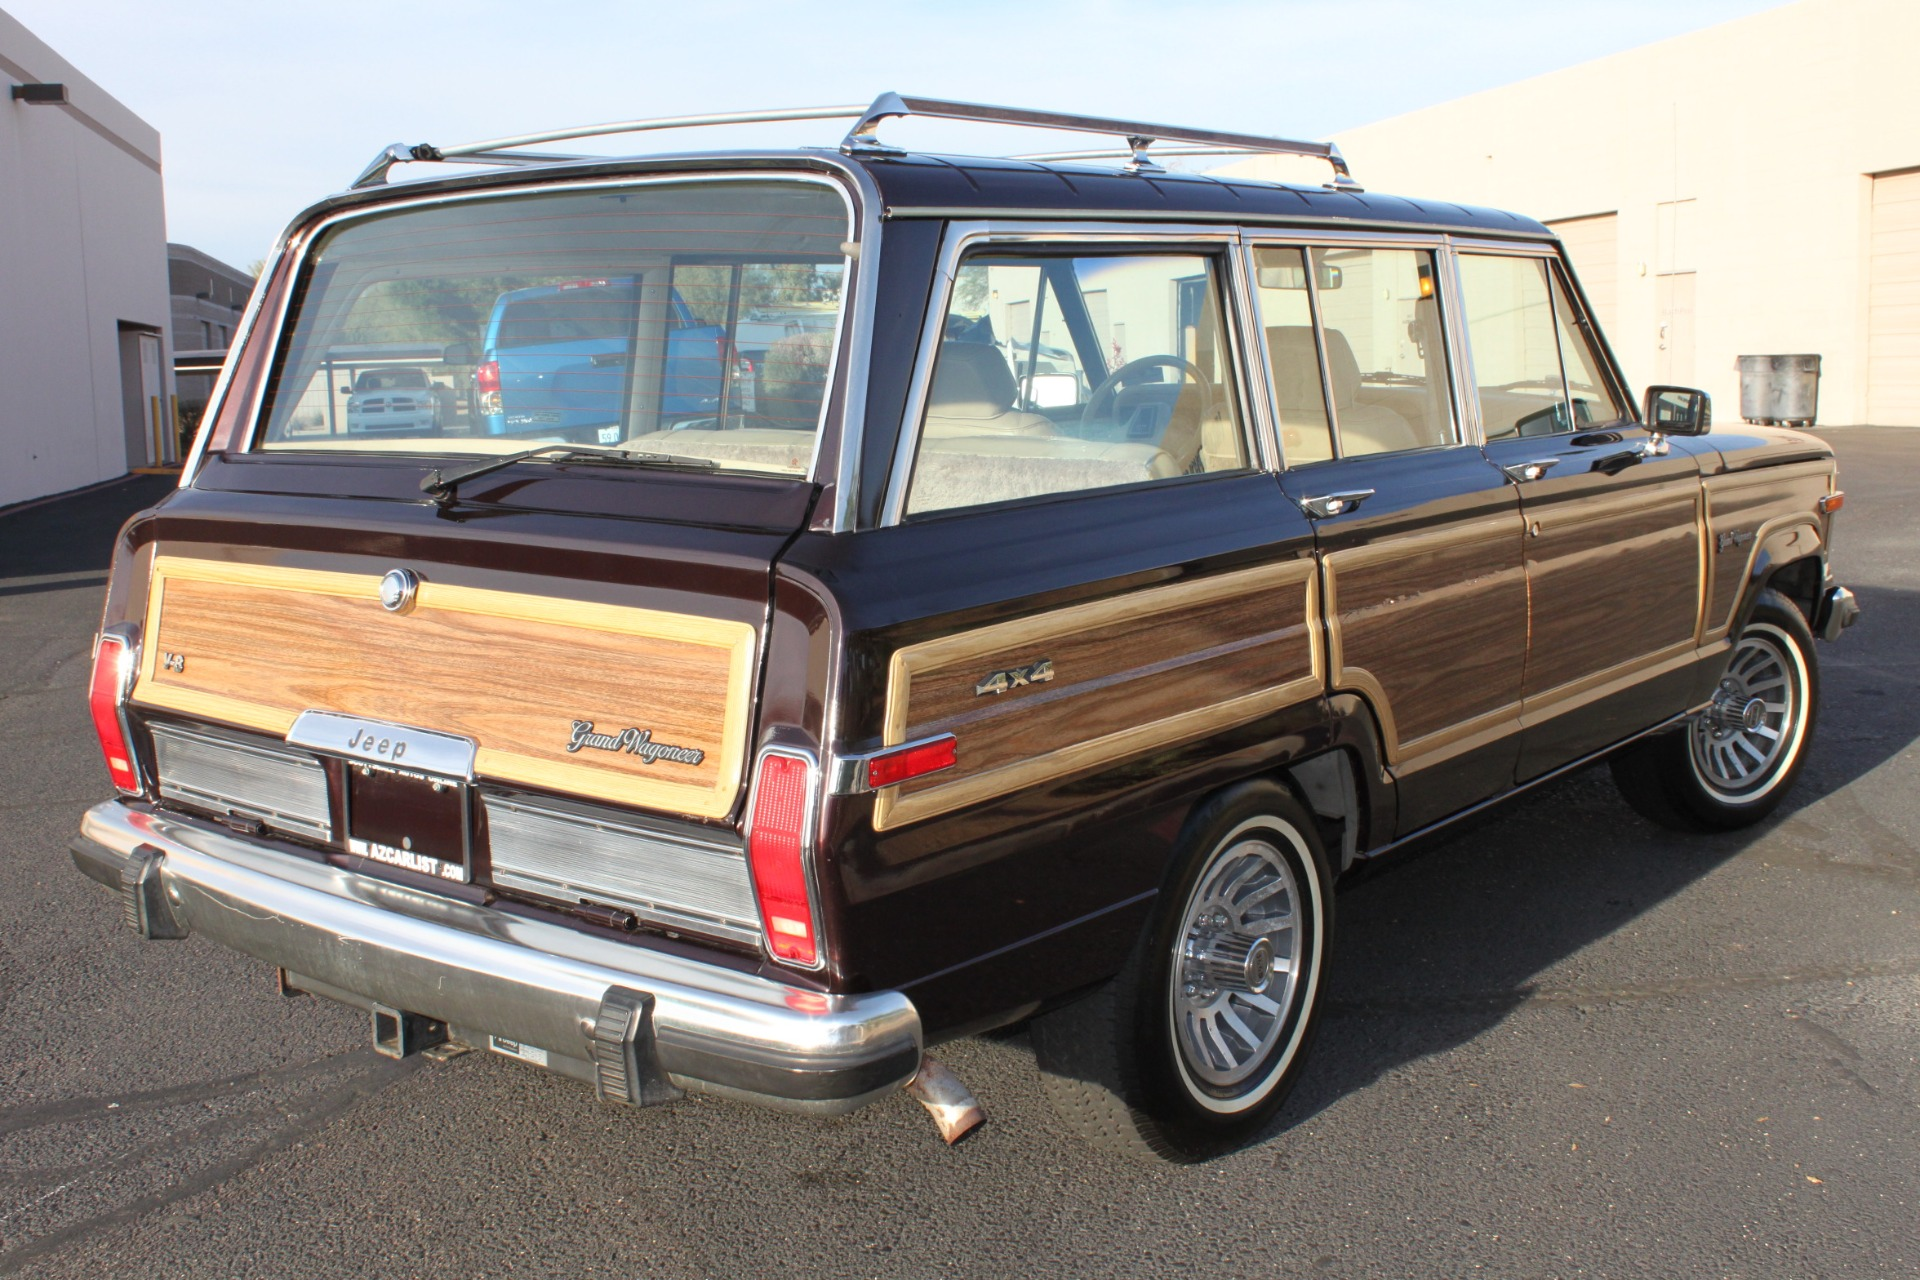 Used-1990-Jeep-Grand-Wagoneer-4X4-Chrysler